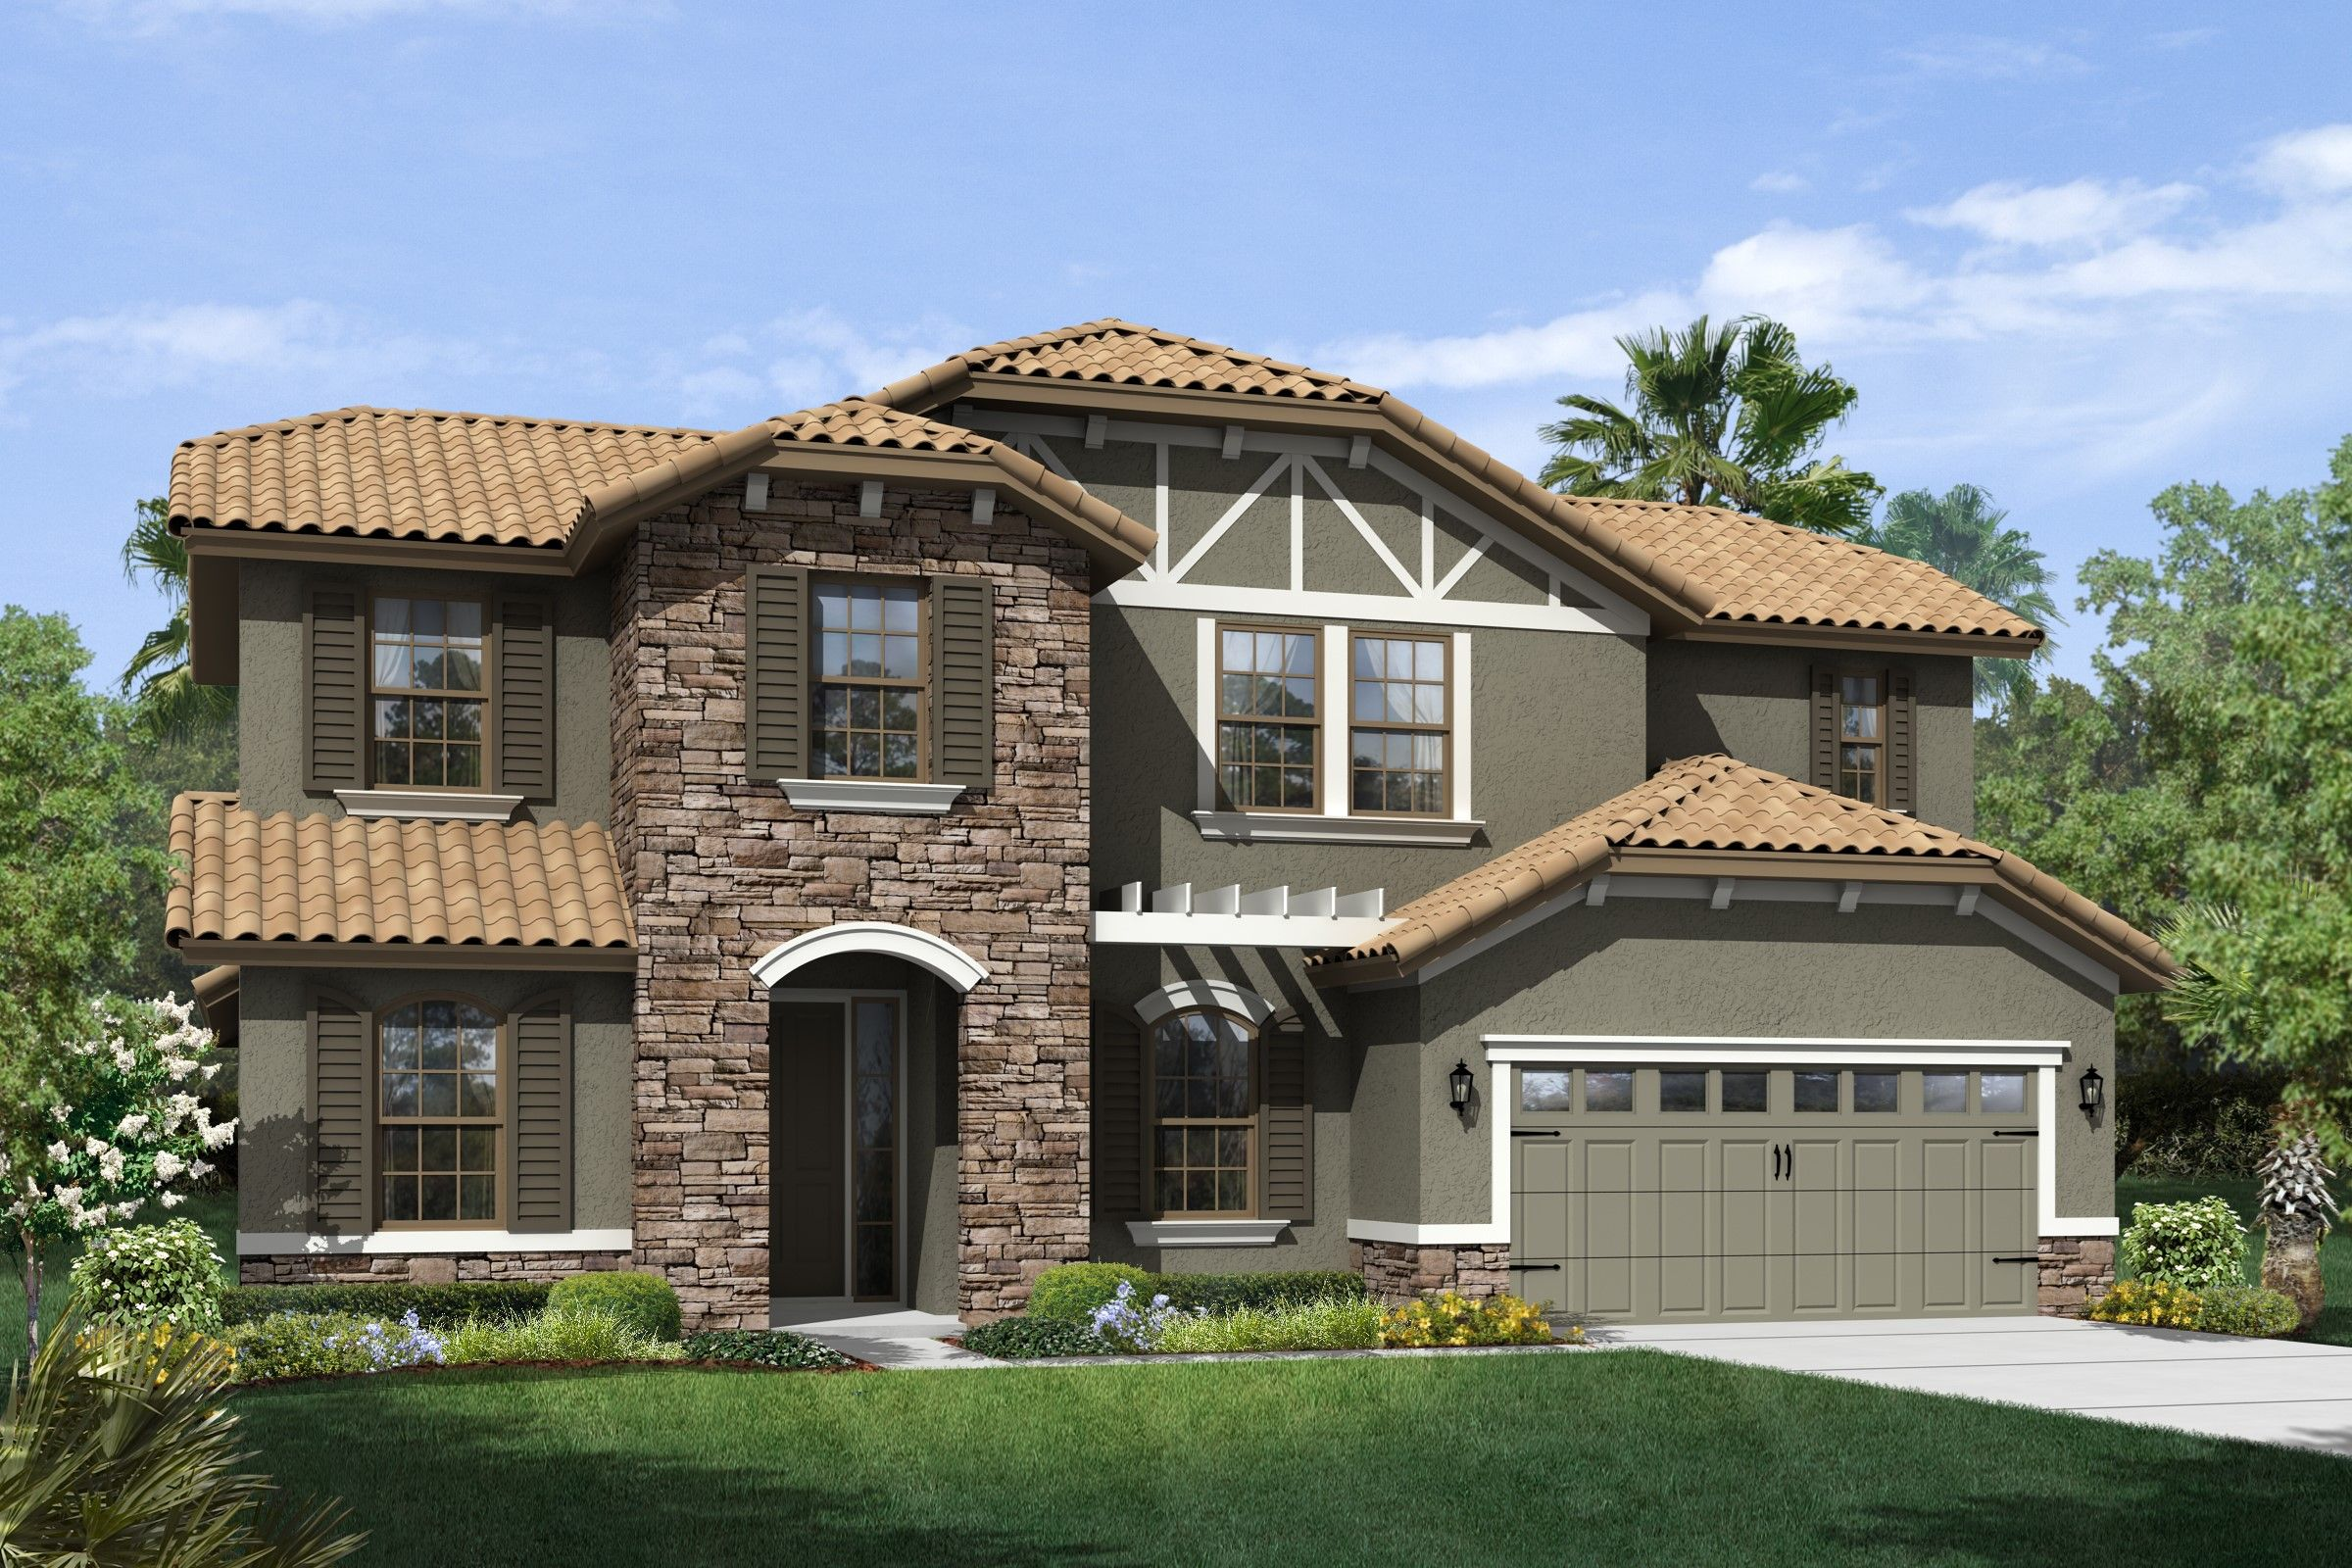 5142 lakecastle drive homesite 12 tampa fl new home for sale 539 homegain